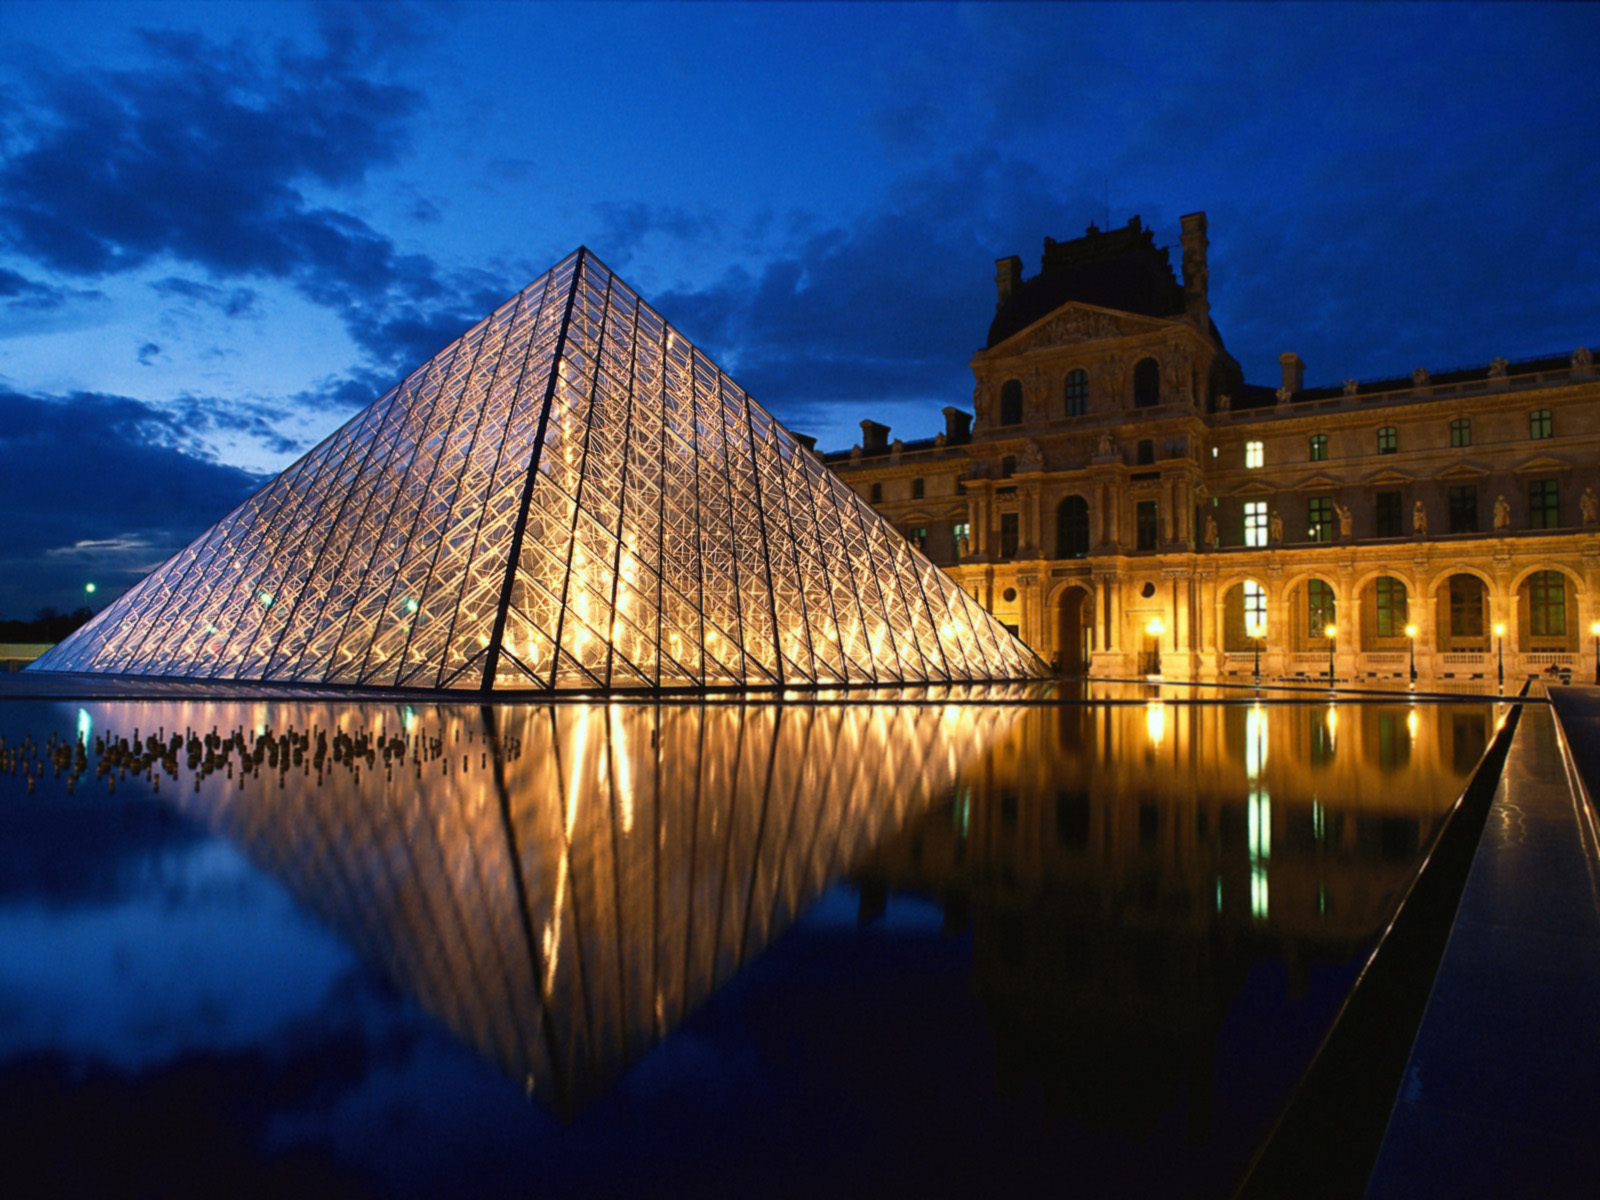 Louvre, Paris in France